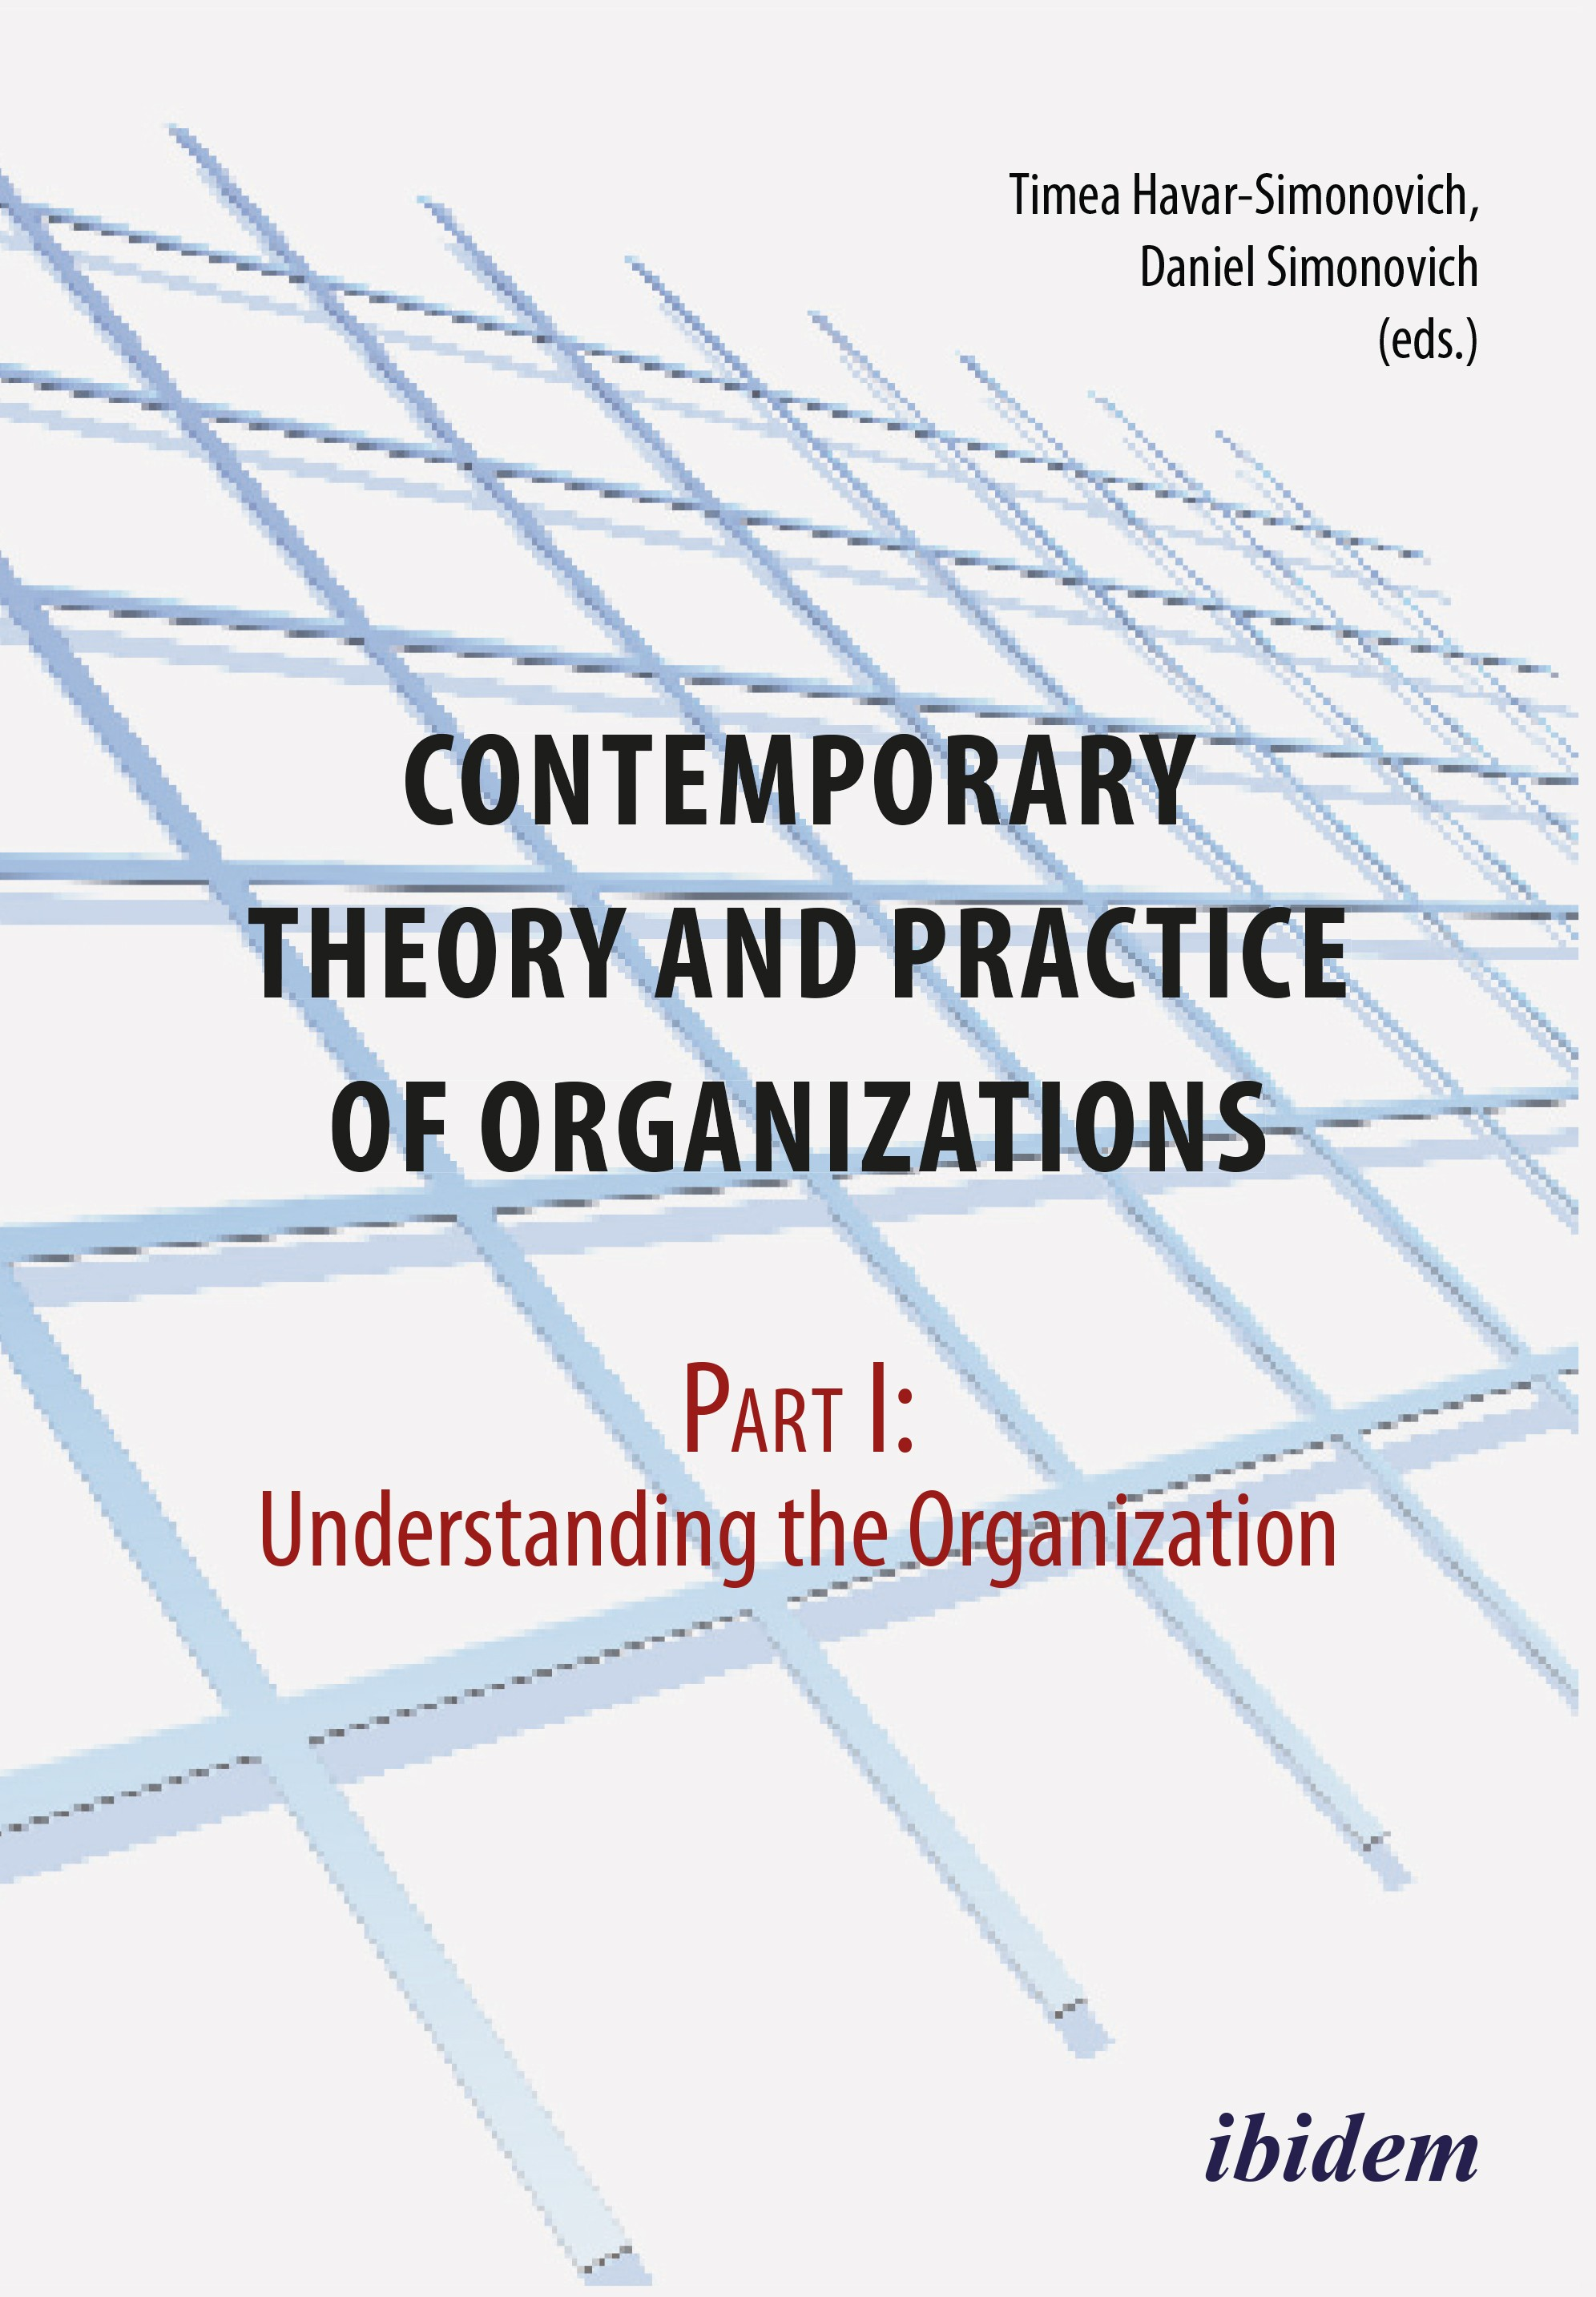 Contemporary Practice and Theory of Organizations – Part 1.